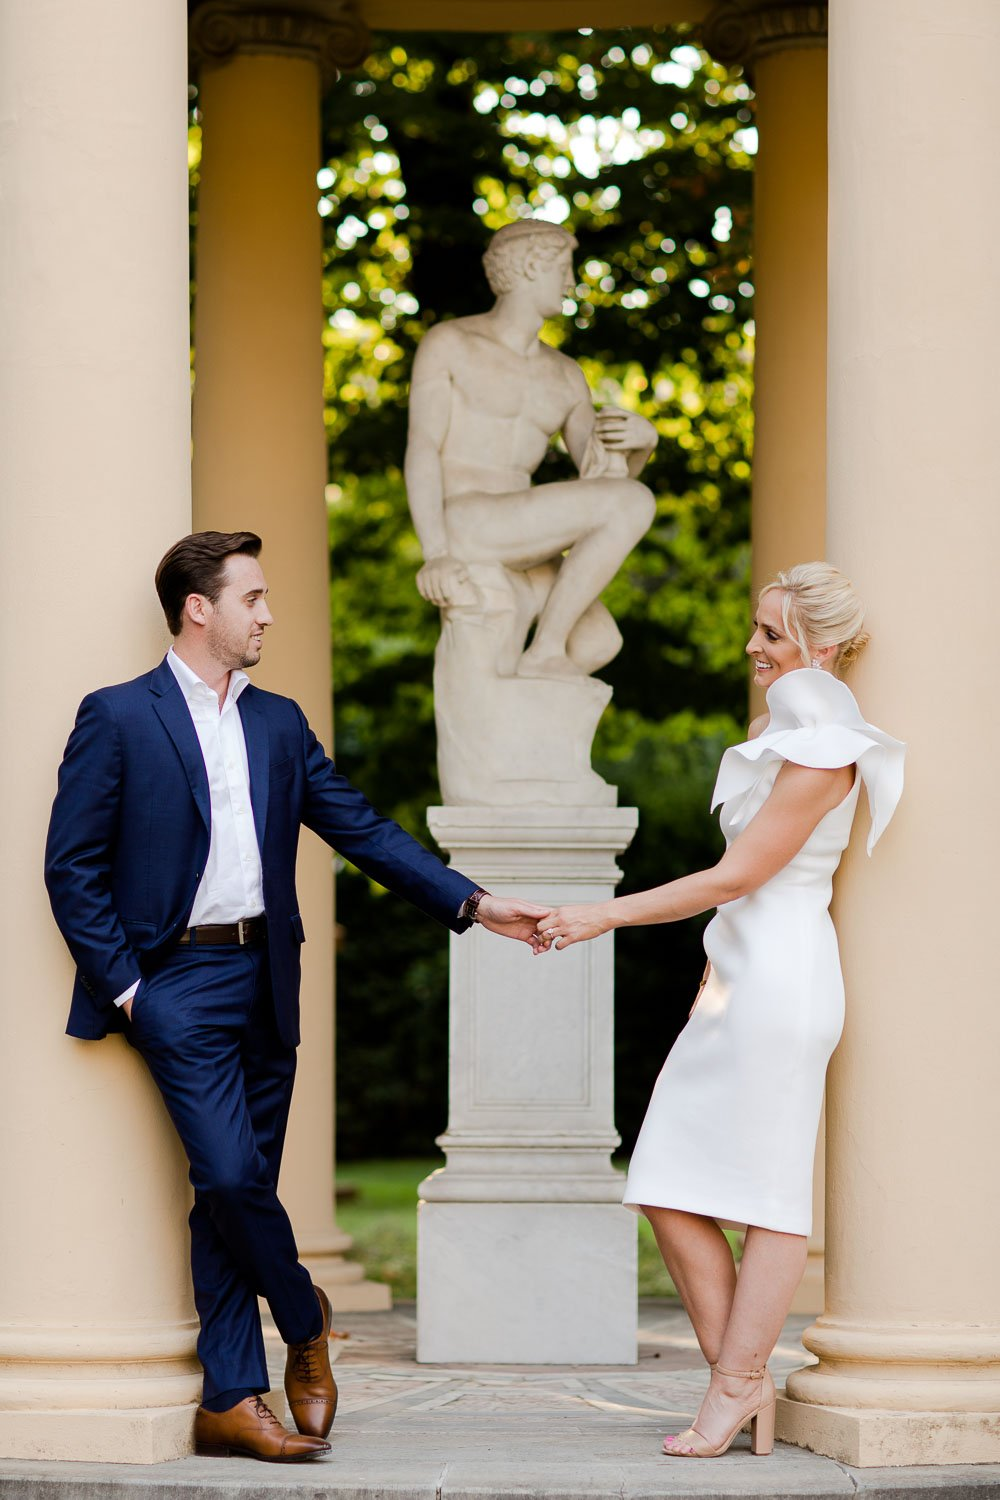 Engagement photography in Fourseasons Florence